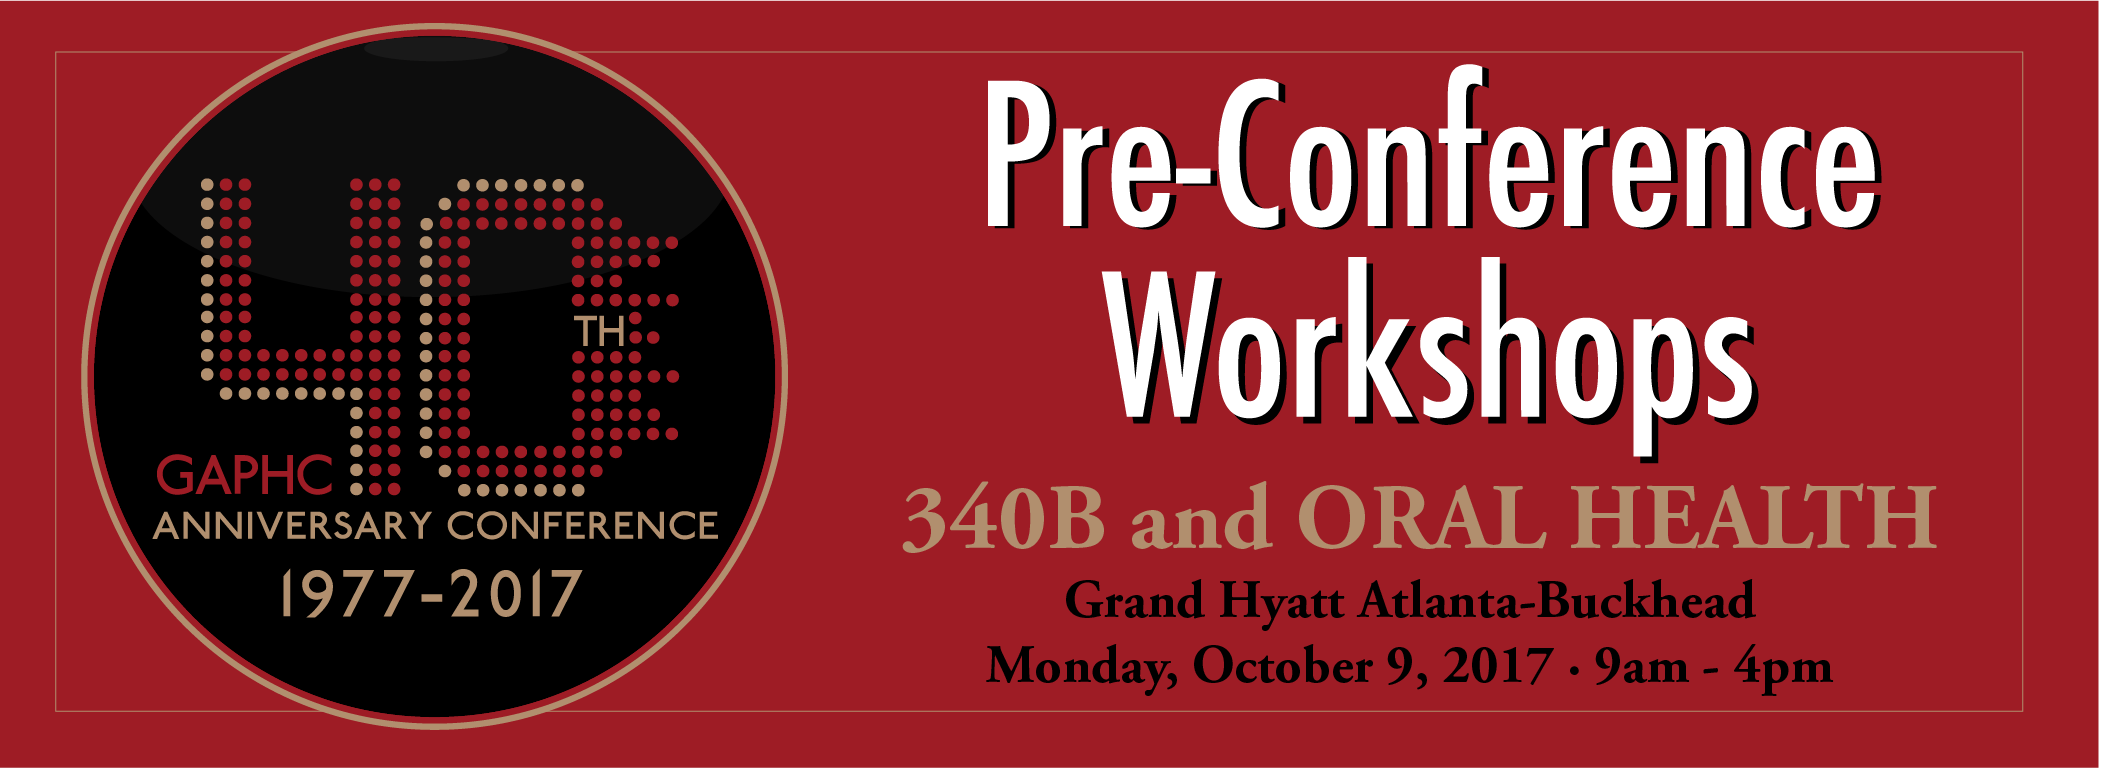 GAPHC's Pre-Conference Workshops: 340B & Oral Health Training